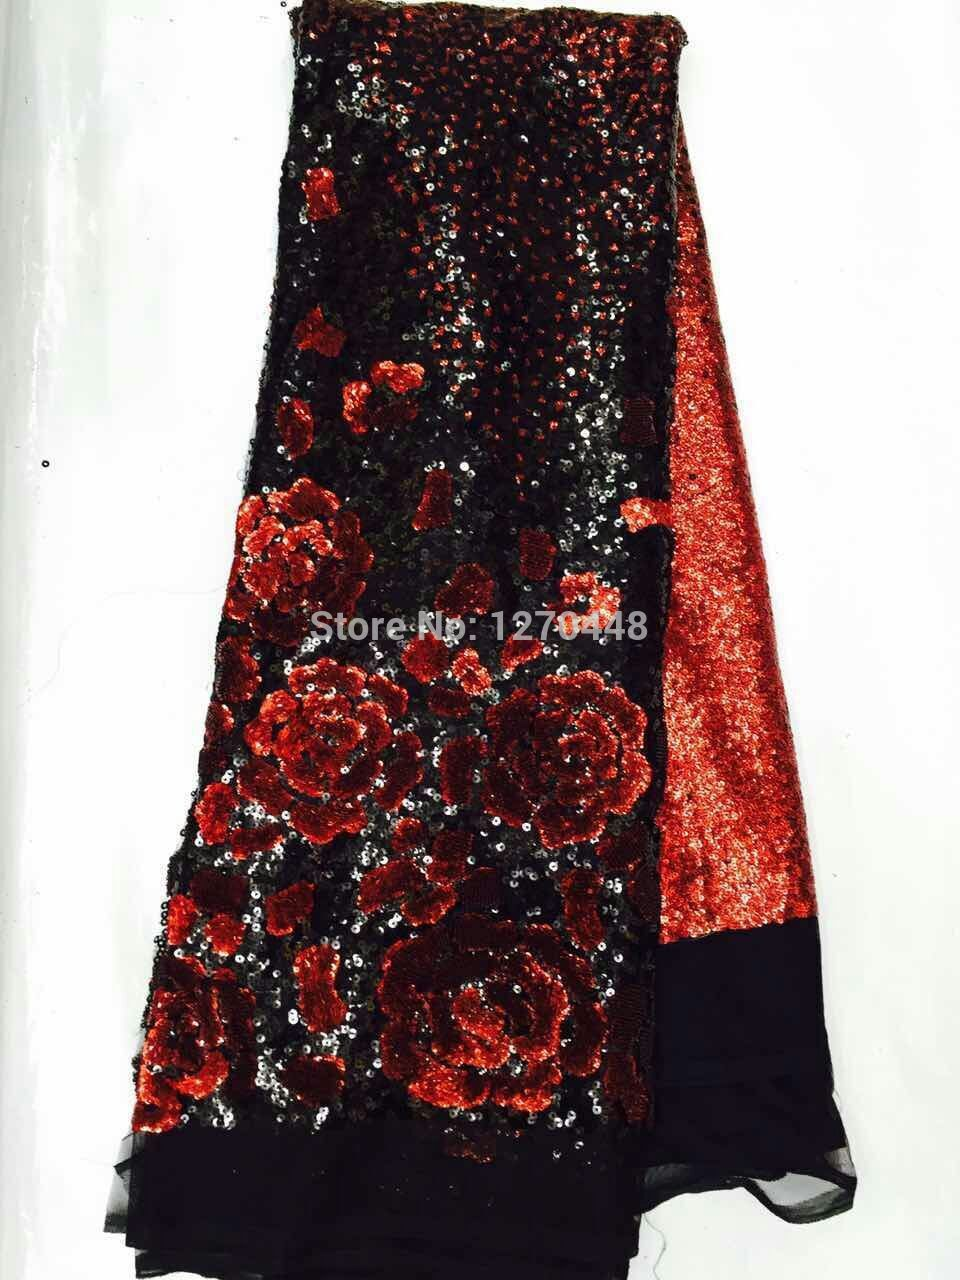 Summer black red high quality lace sequin embroidery